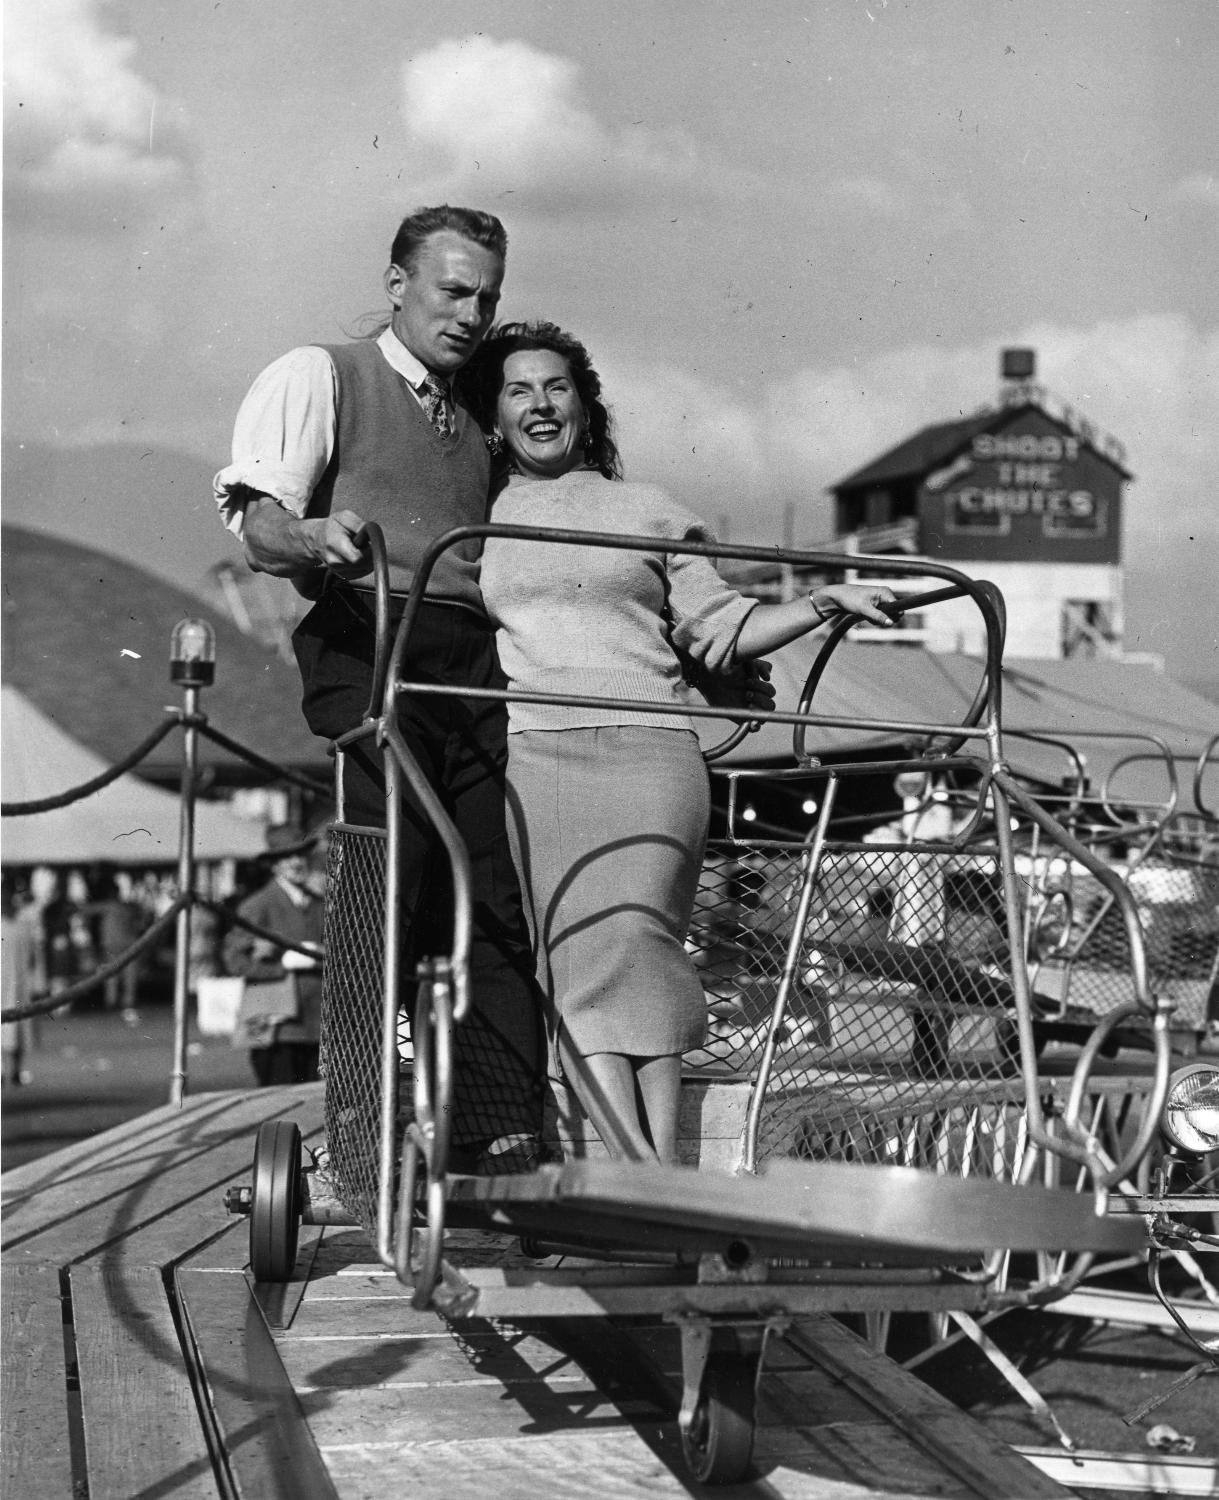 Couple on amusement park ride in P.N.E. Gayway, 1948. Item CVA 180-1520